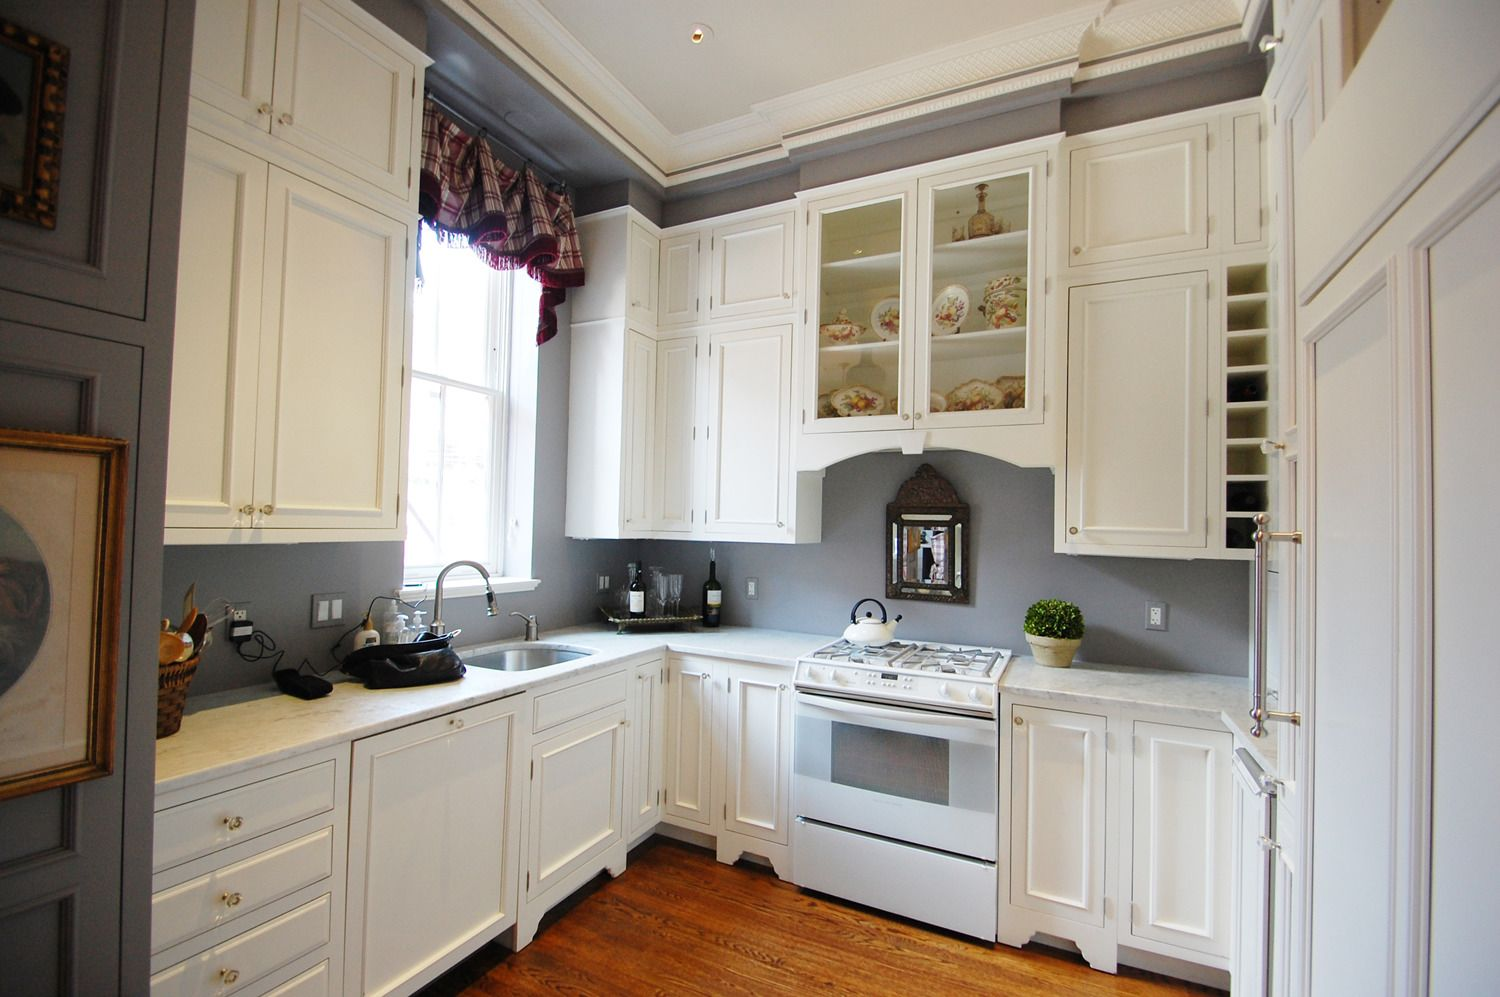 A Grand And Elegant Kitchen In Boston Grey Kitchen Walls Gray And White Kitchen Paint For Kitchen Walls